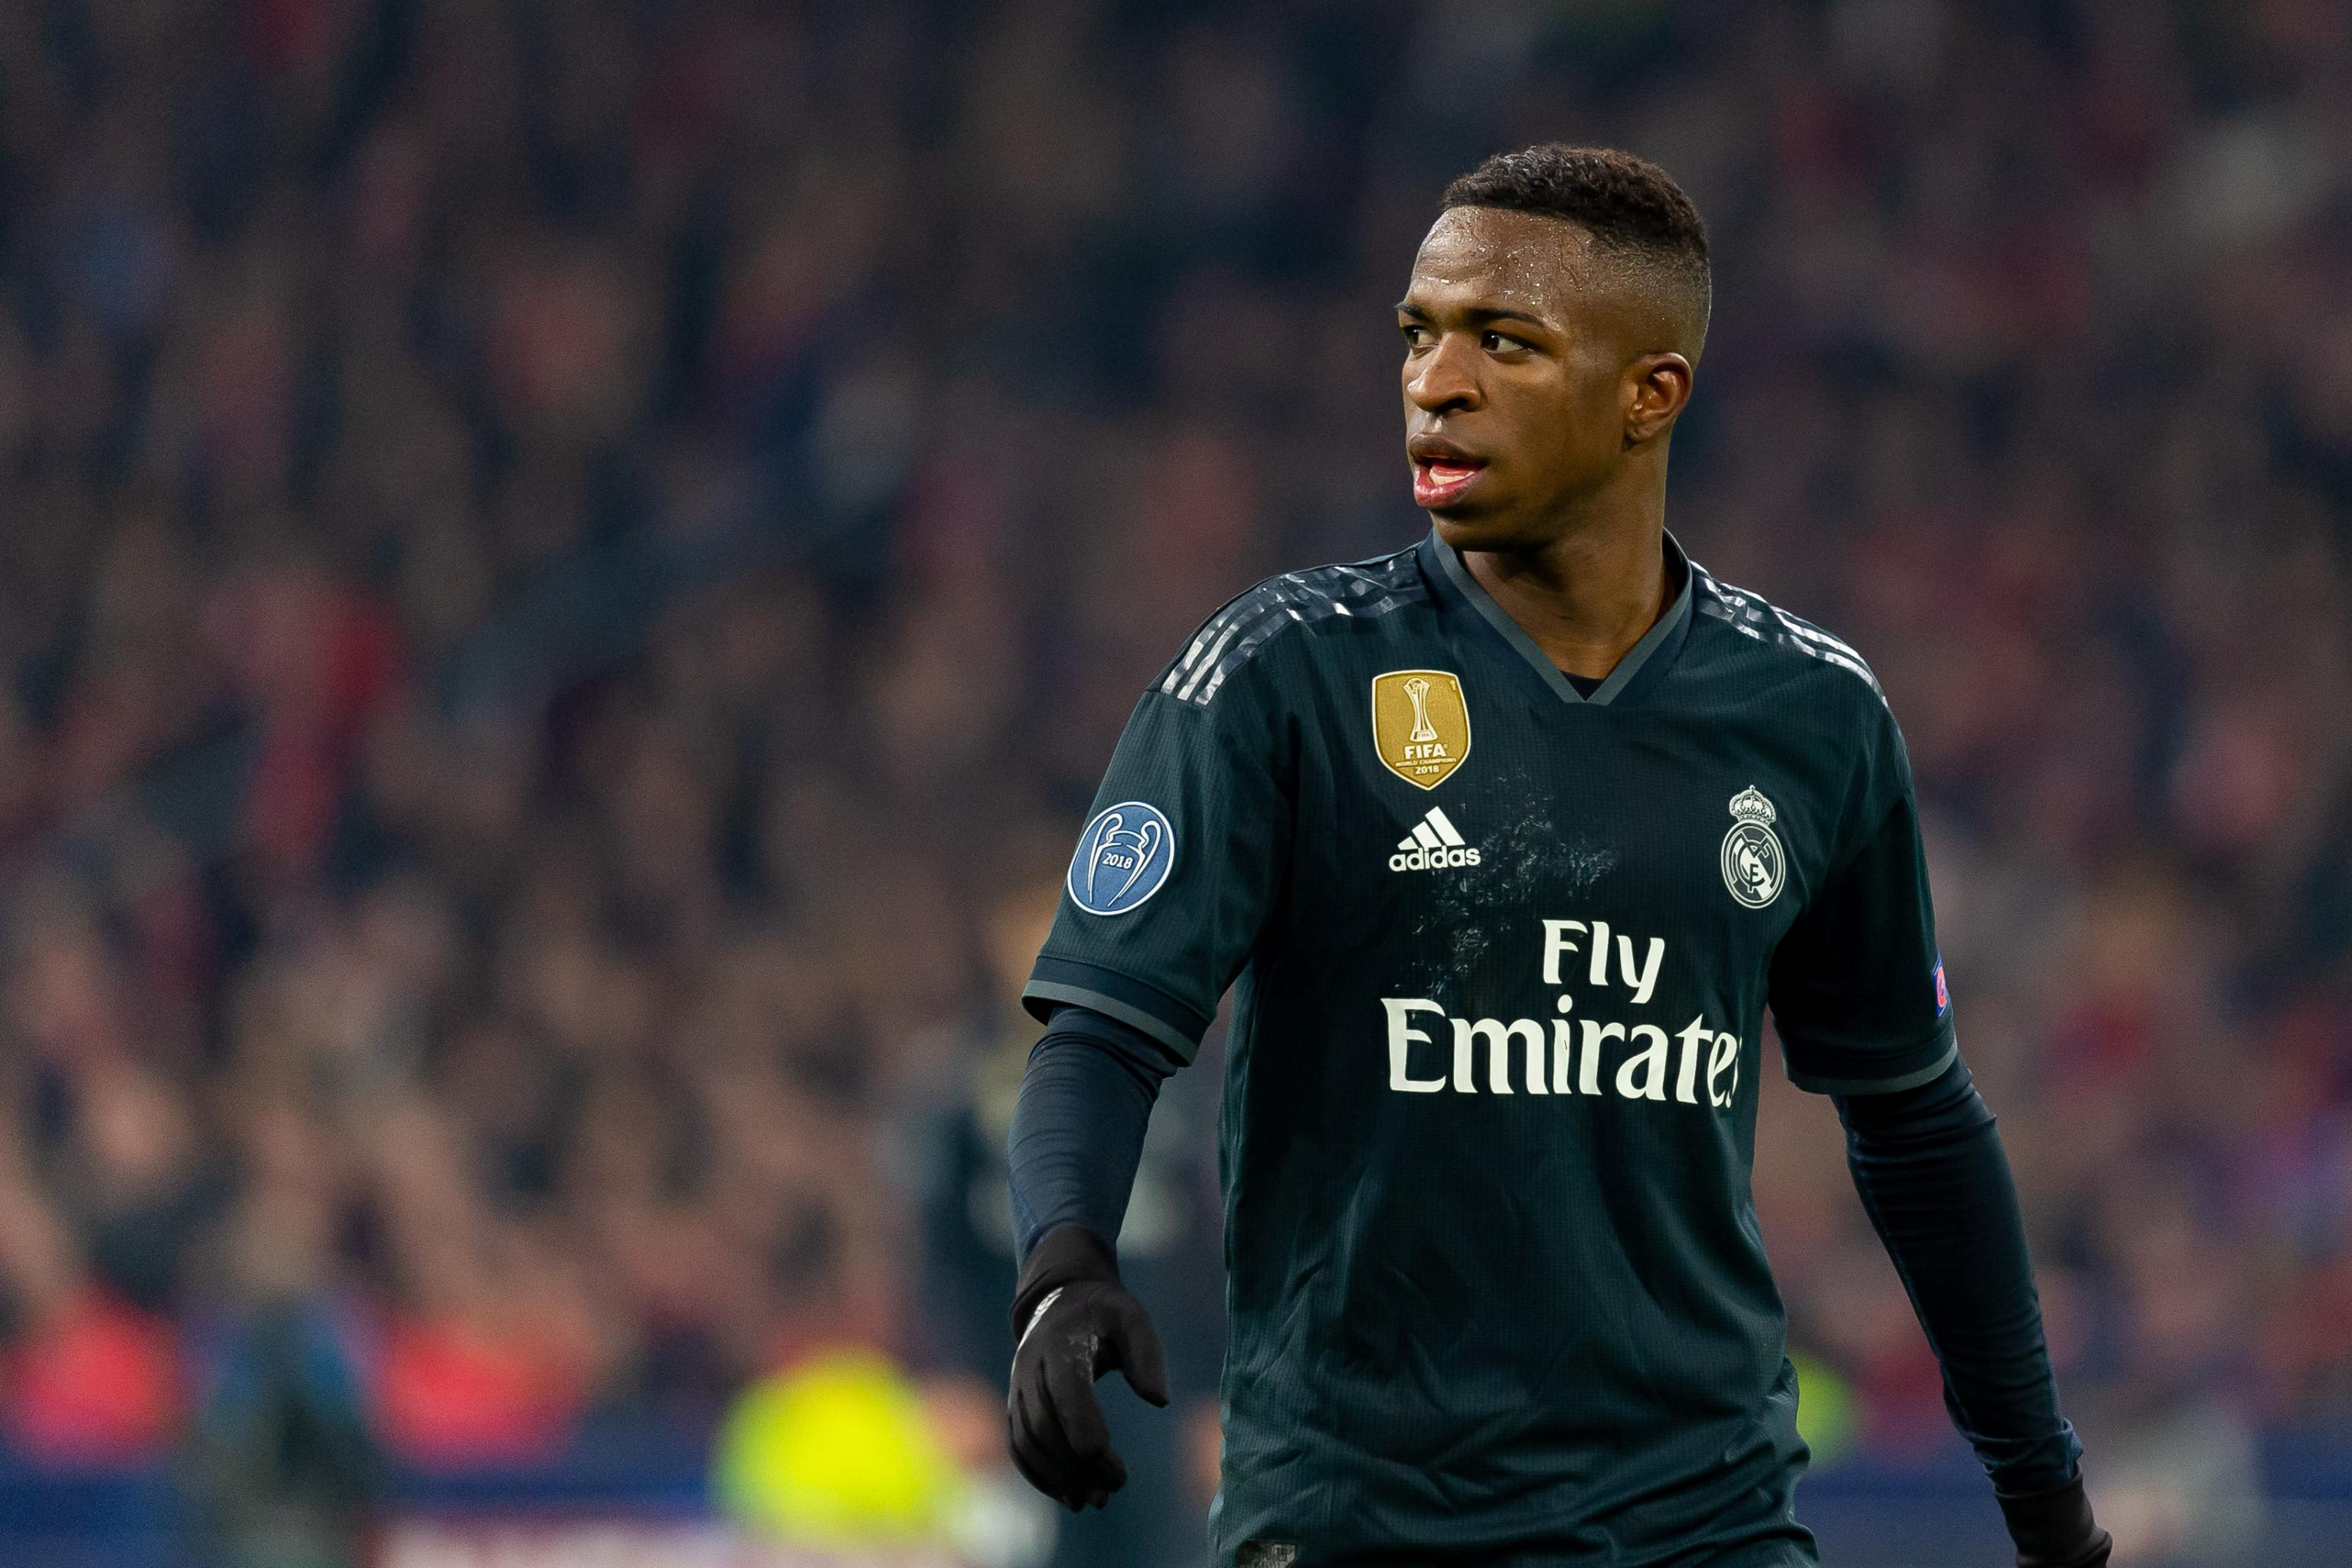 hot sale online 852ff 13869 Vinicius Jr 'Was Going to Play' More, Says Ex-Real Madrid ...